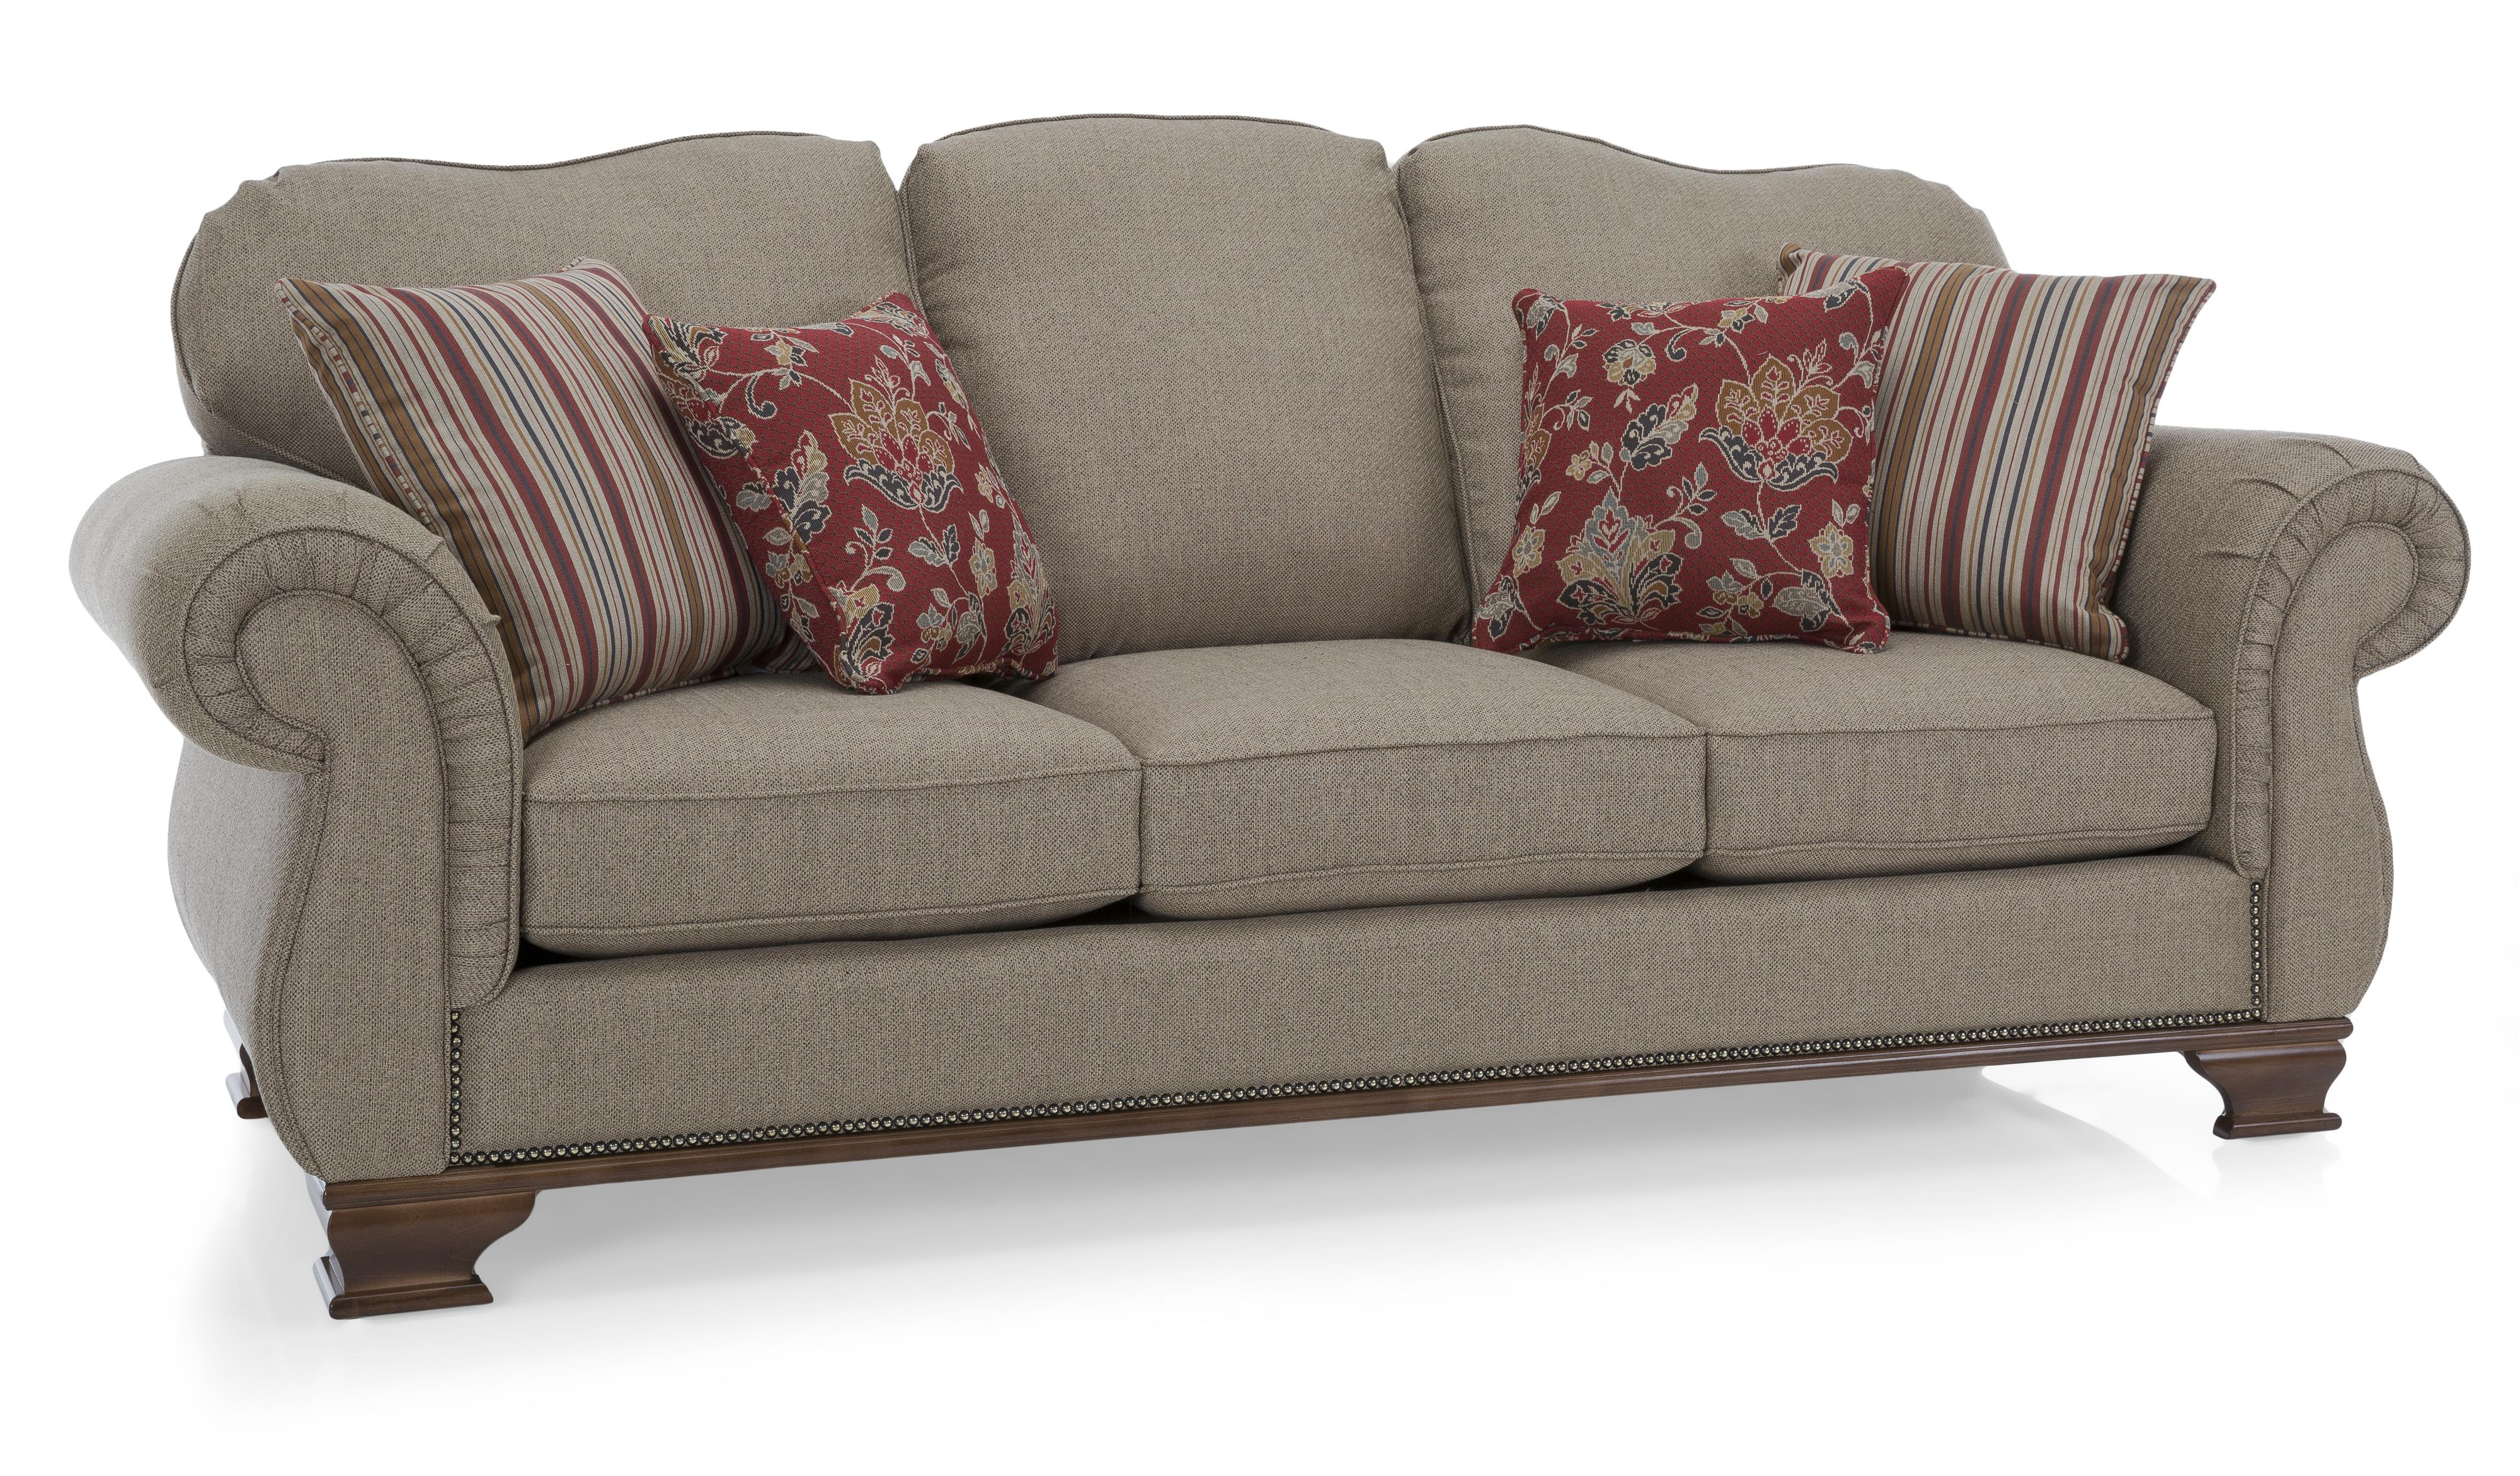 6933 Sofa by Decor-Rest at Reid's Furniture